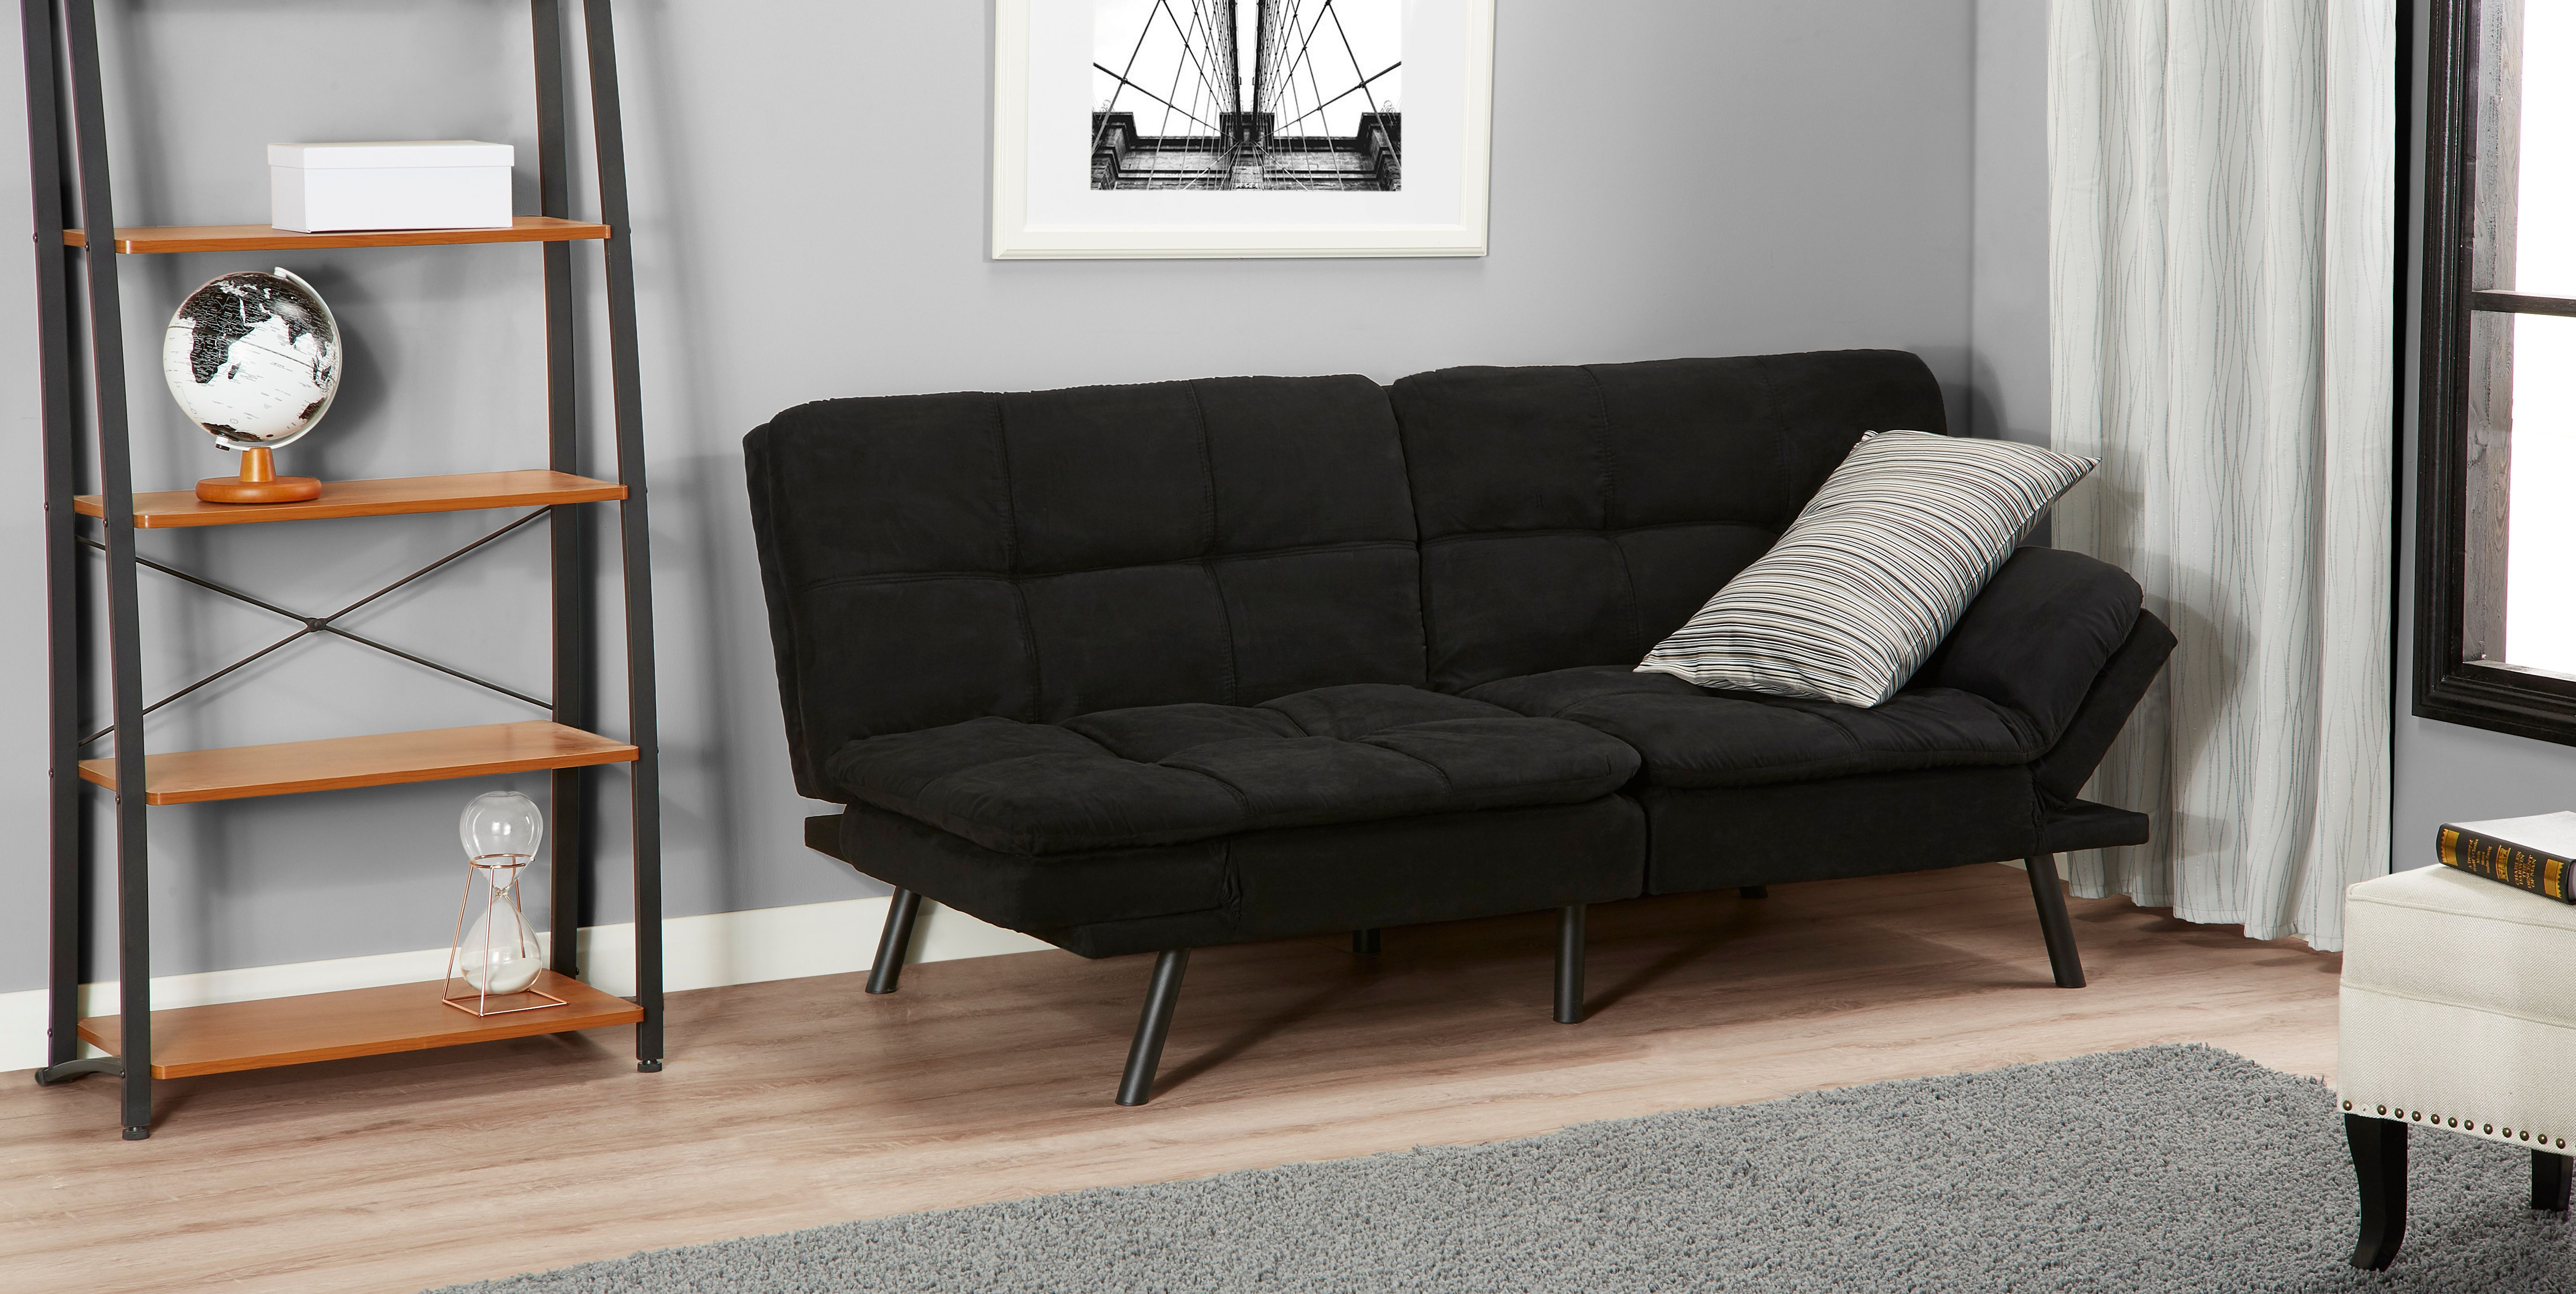 Black Faux Leather Sturdy Mainstay Convertible Double Duty Wooden Frame Split Seat and Foldable Bed in One Memory Foam Futon with Polyester Allergy Relief Pillow